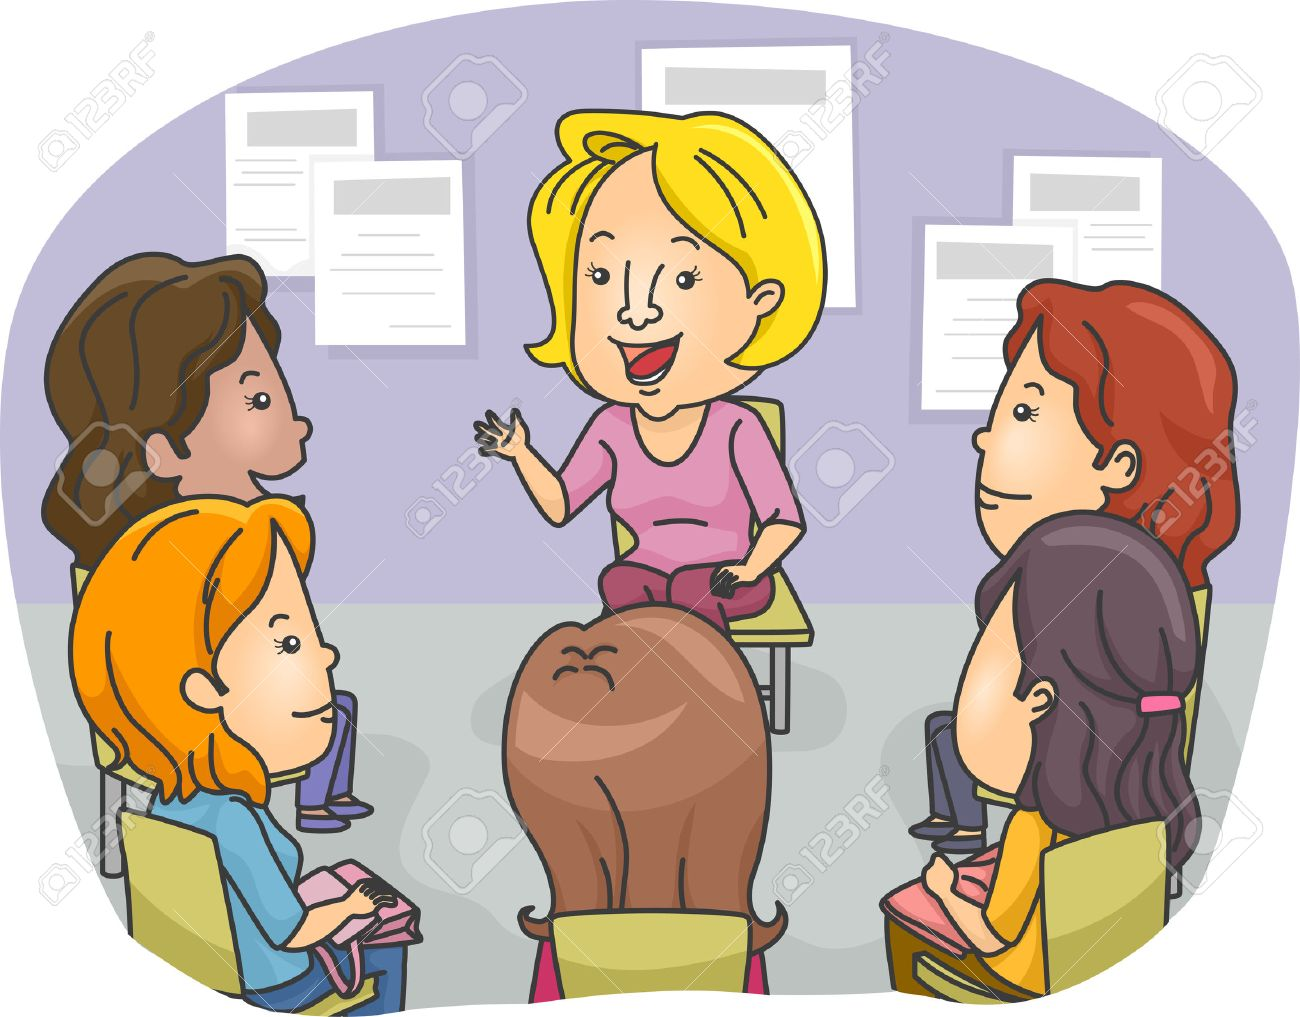 Group therapy clipart 8 » Clipart Station.